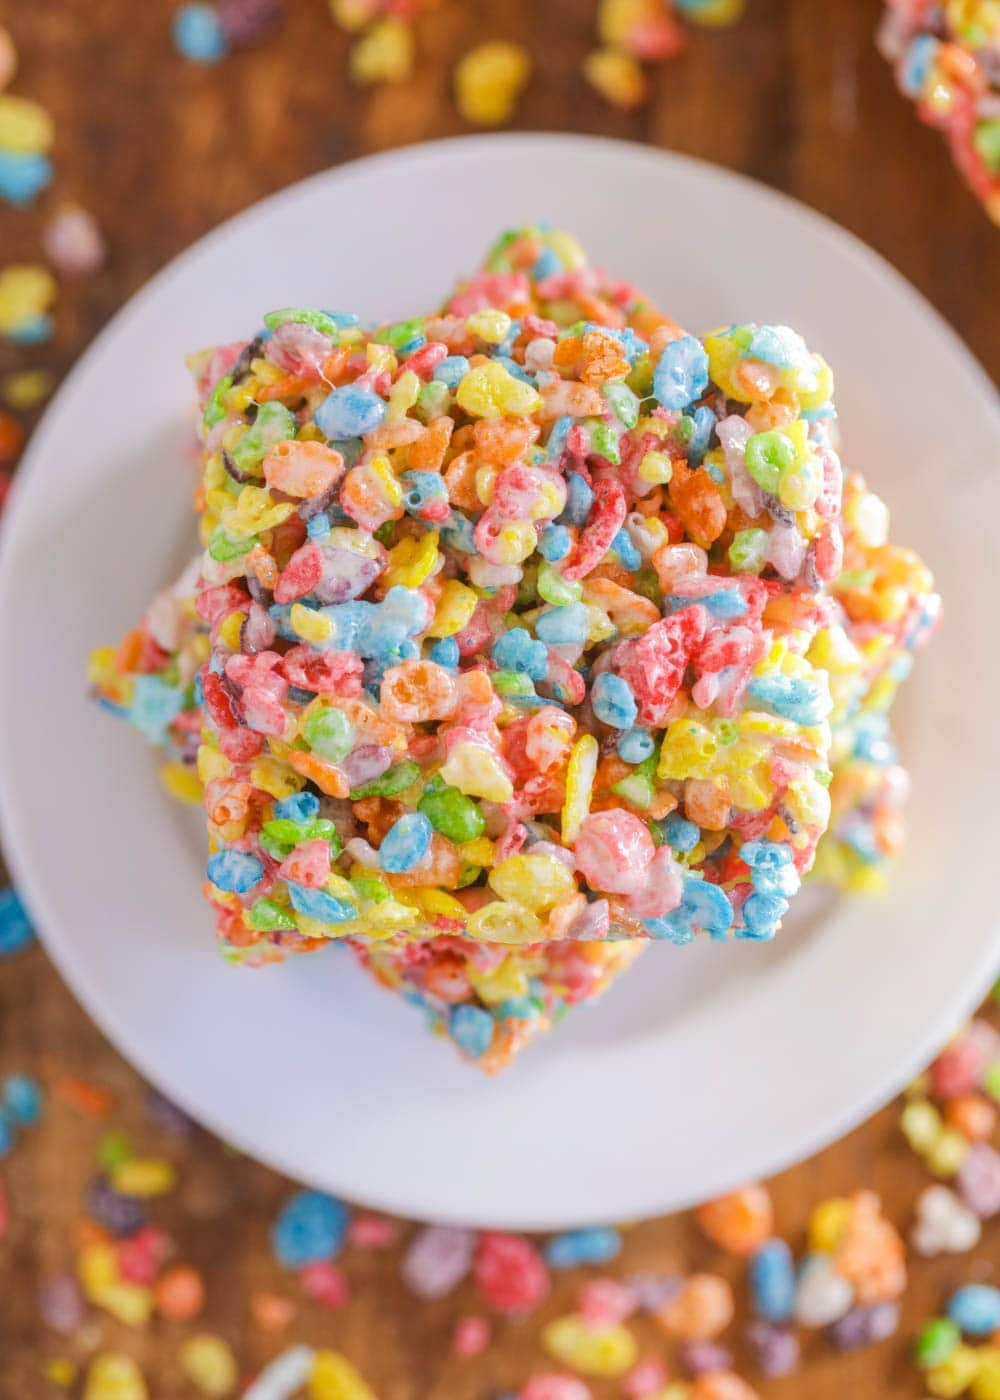 Fruity pebble rice krispie treats stacked on a white plate